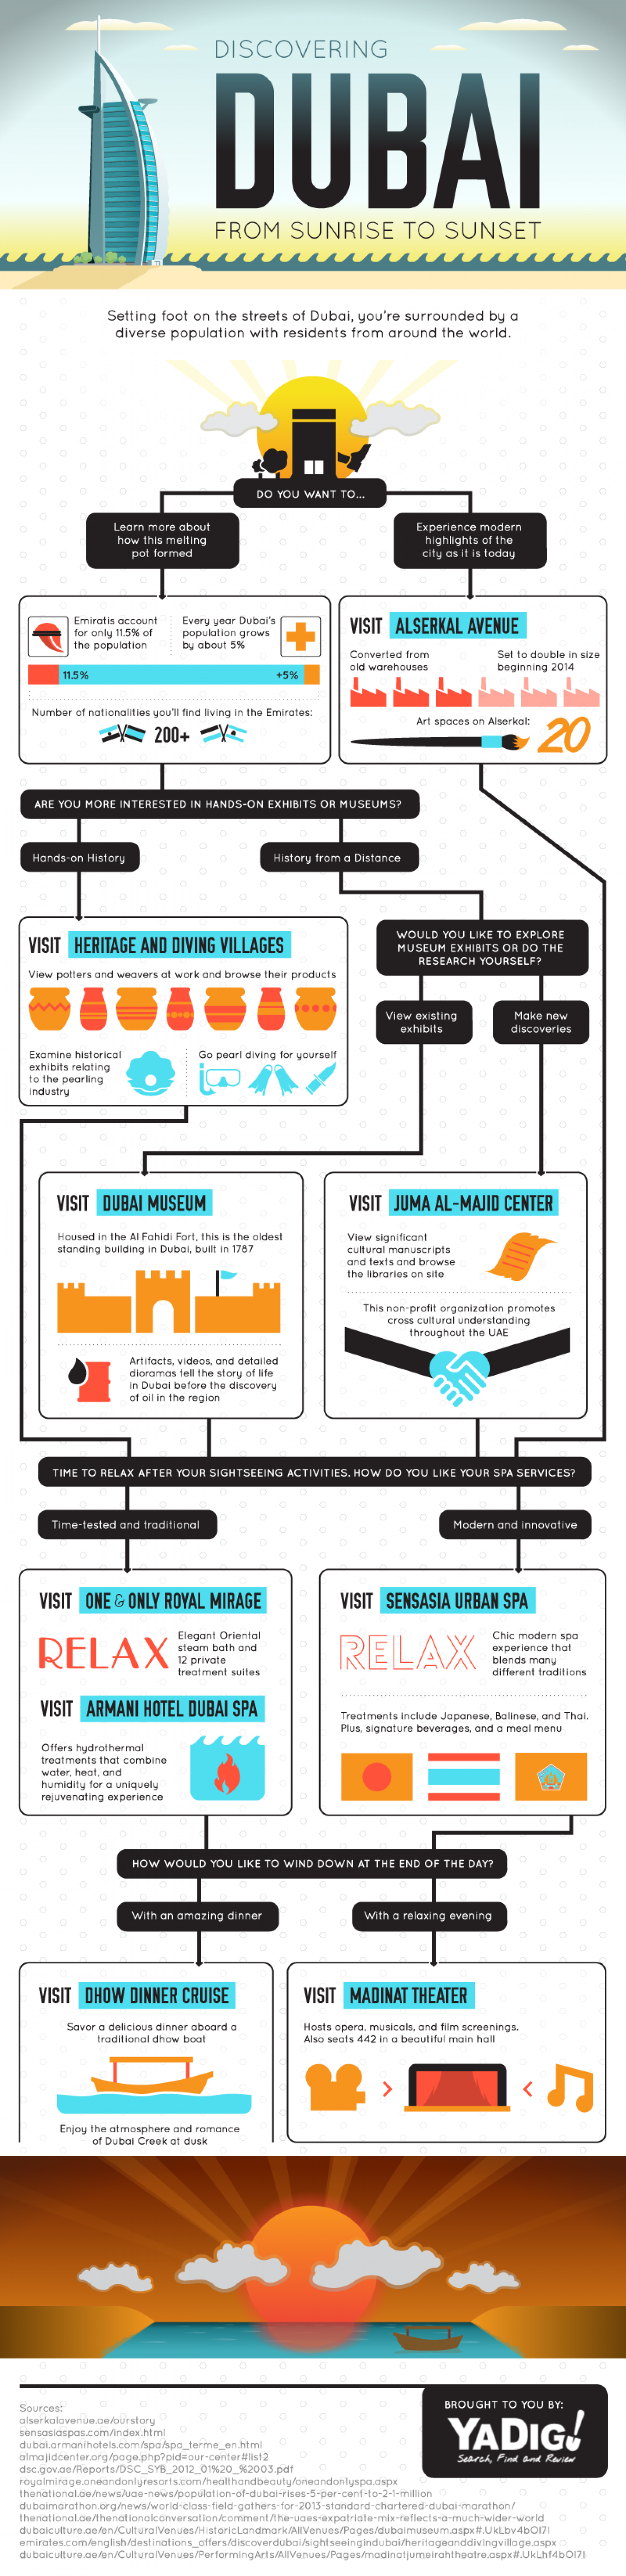 Discovering Dubai: From Sunrise To Sunset Infographic